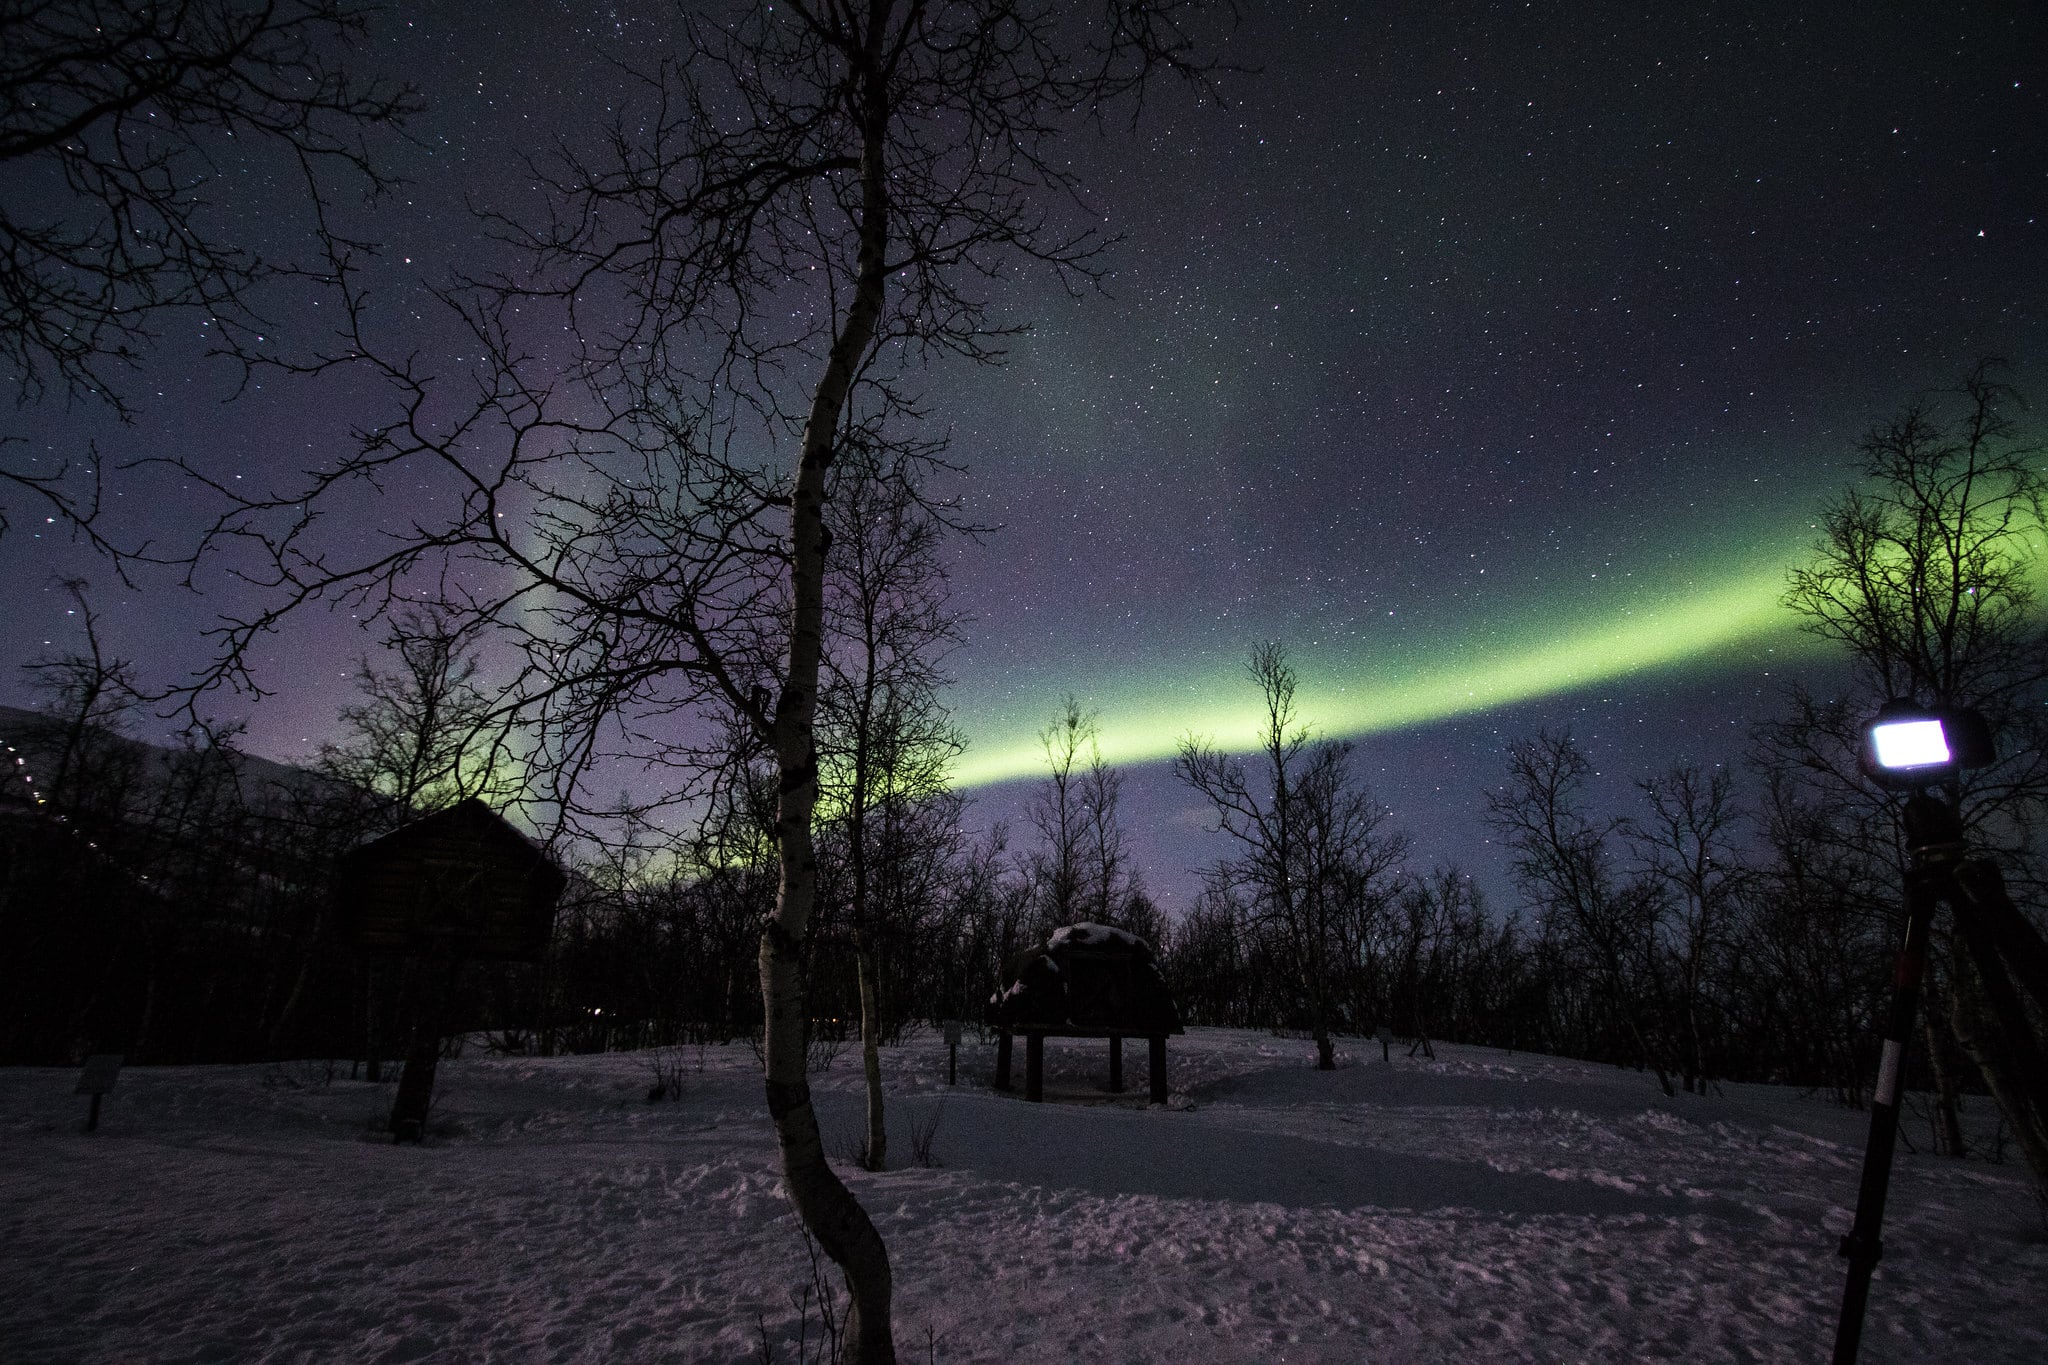 bisko is particularly known as one of the best places for spotting the northern lights due to the ideal weather conditions and dry air, but it is also a breathtaking location from a landscape point of view